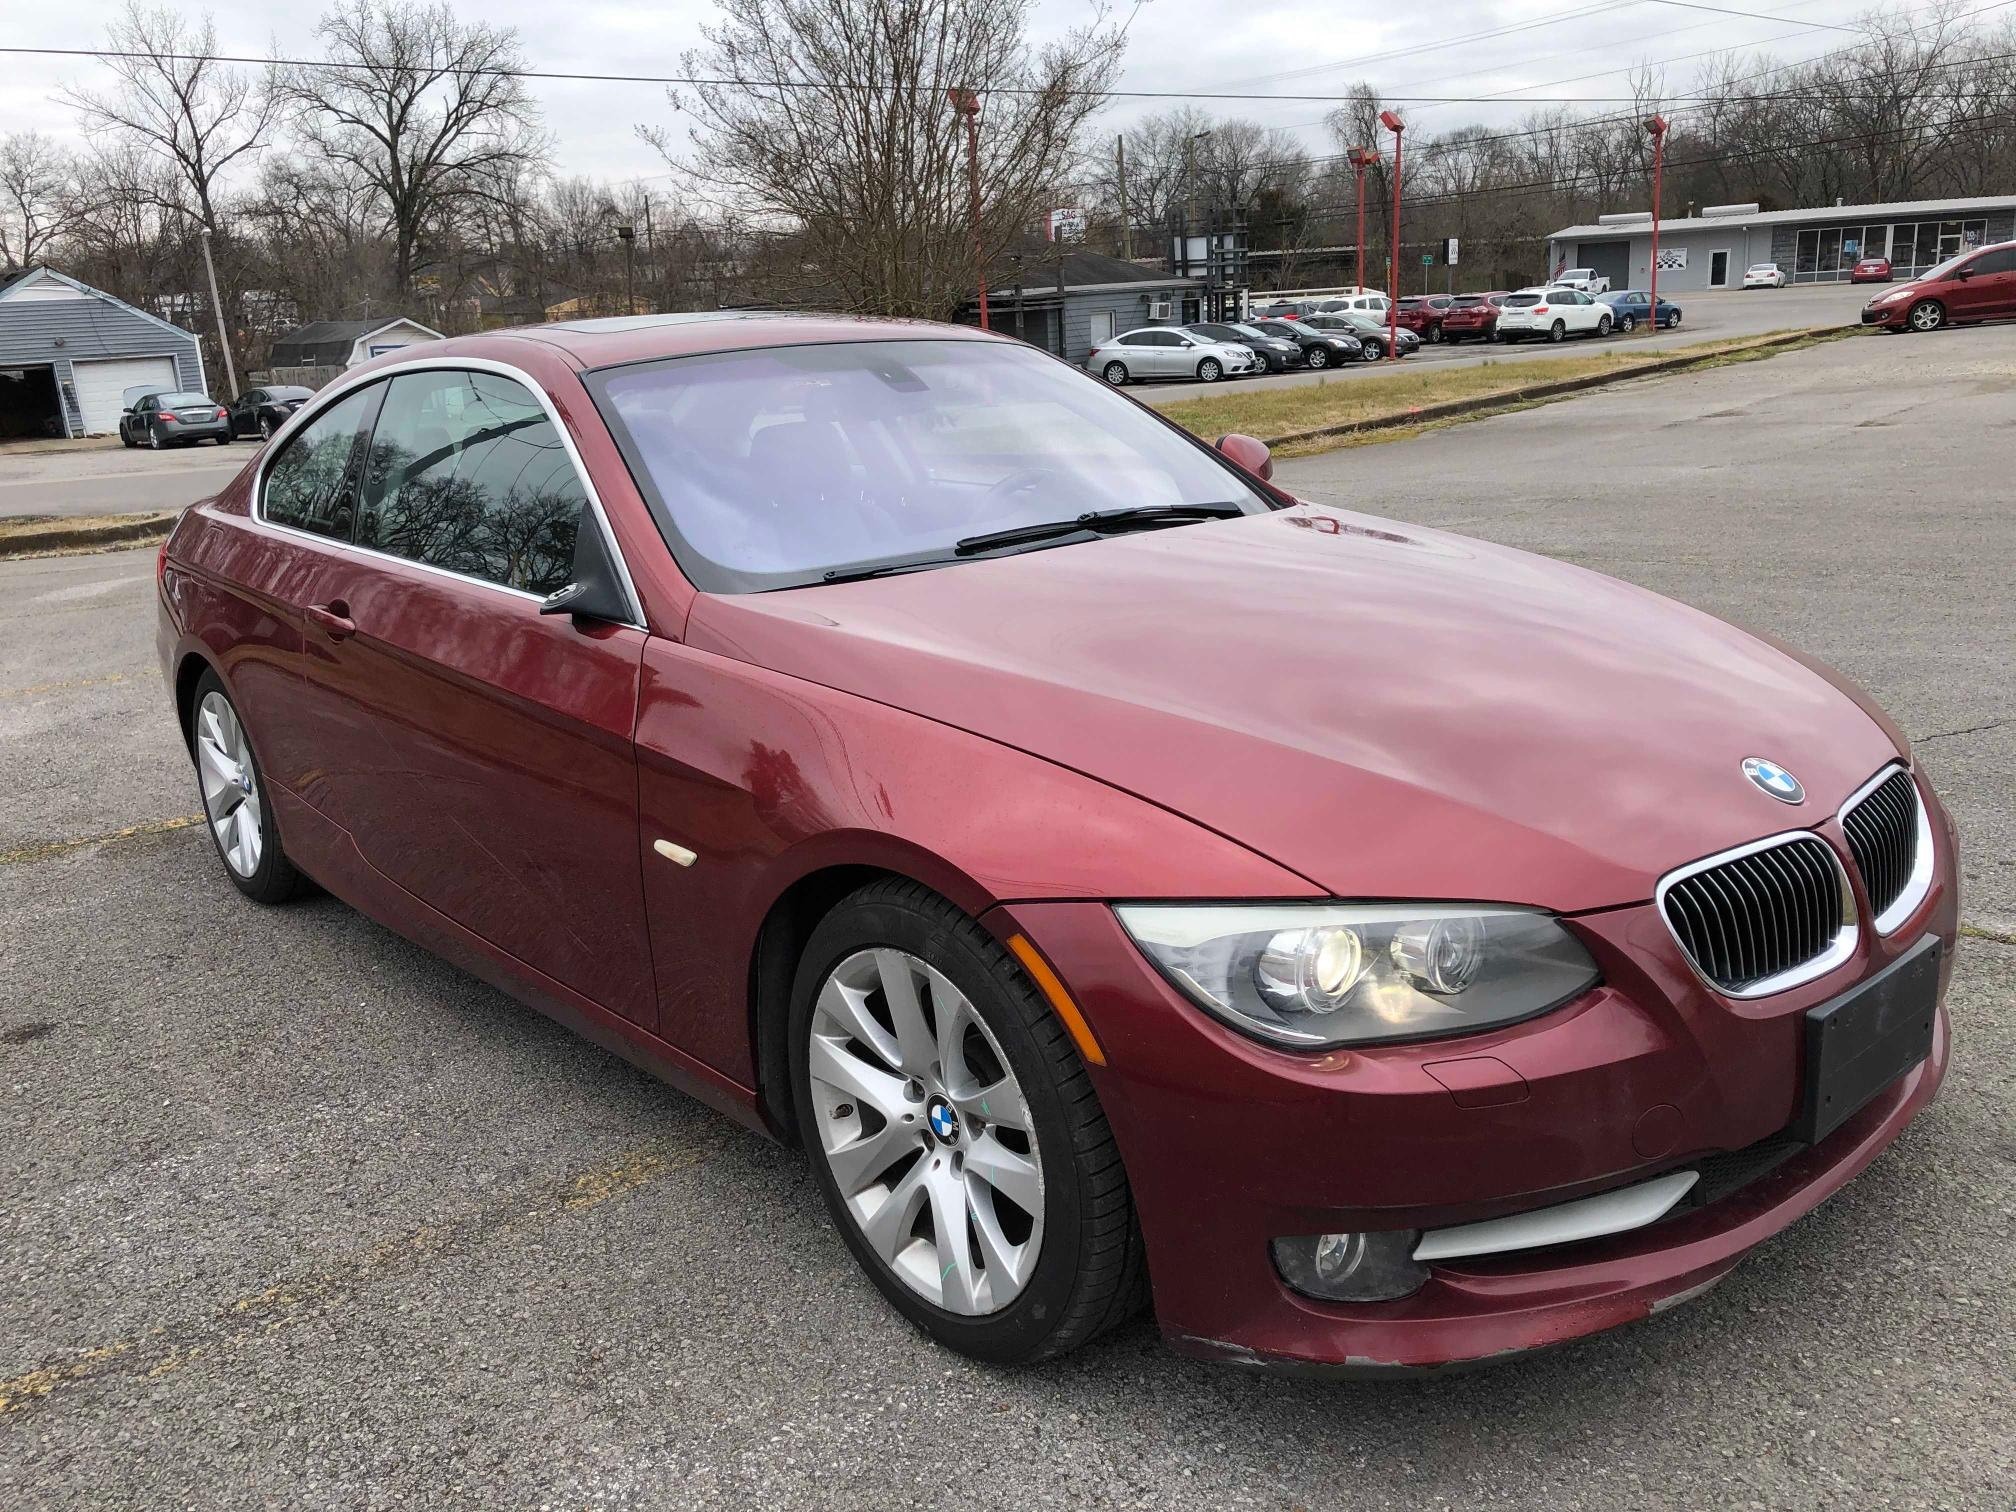 2012 BMW 328 I for sale in Lebanon, TN